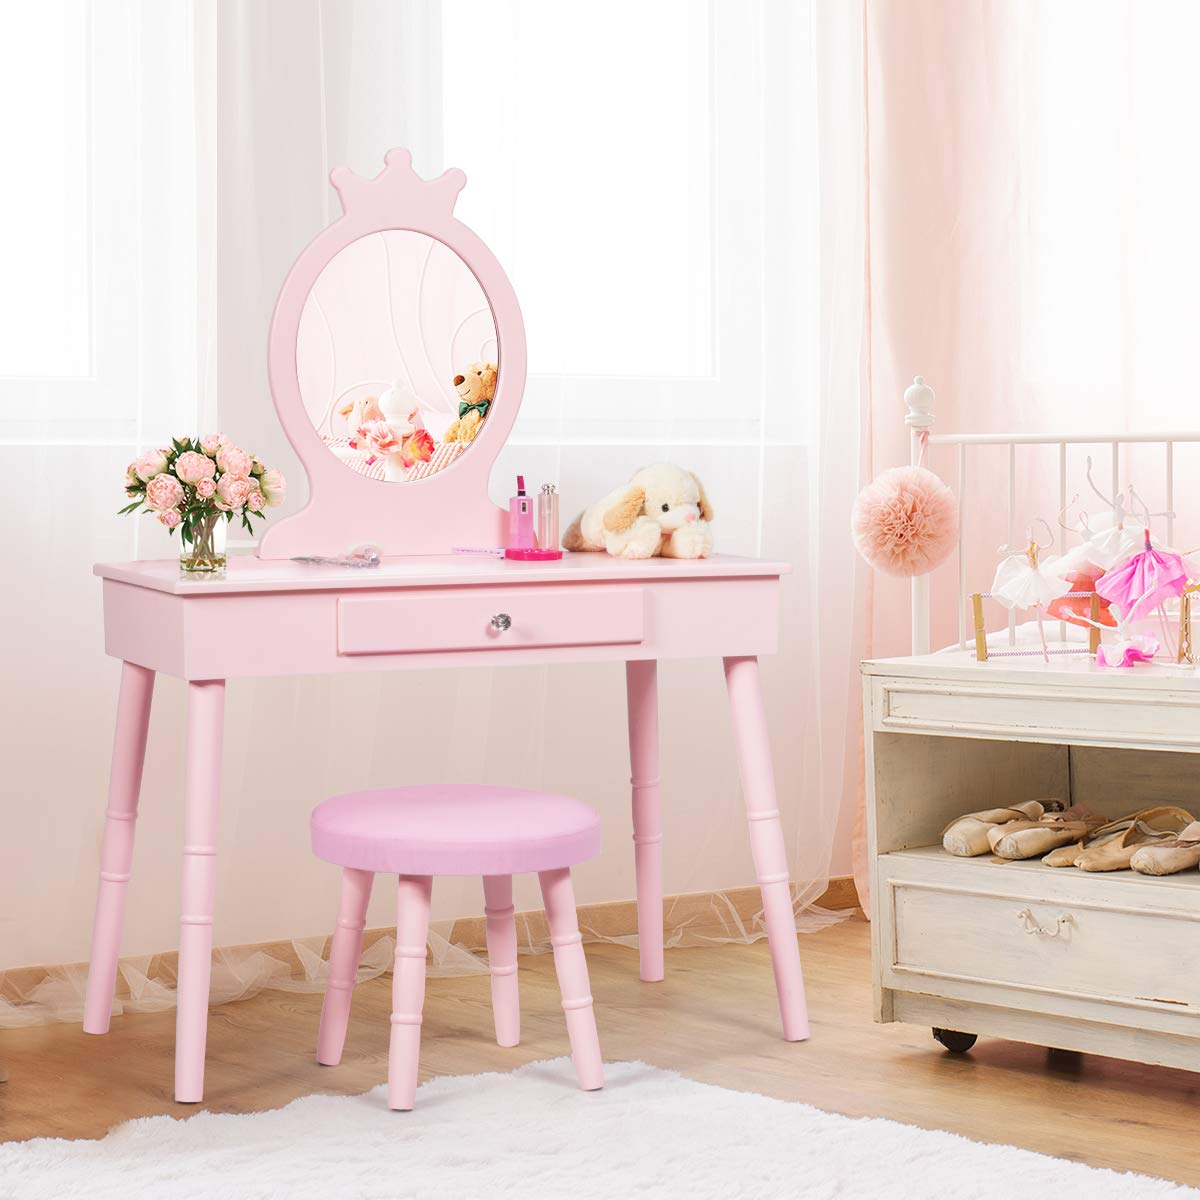 Costzon Kids Vanity Set, Wooden Princess Makeup Table with Cushioned Stool, Large Drawer and Crown Mirror, Pretend Beauty Make Up Dressing Play Set for Girls, Pink